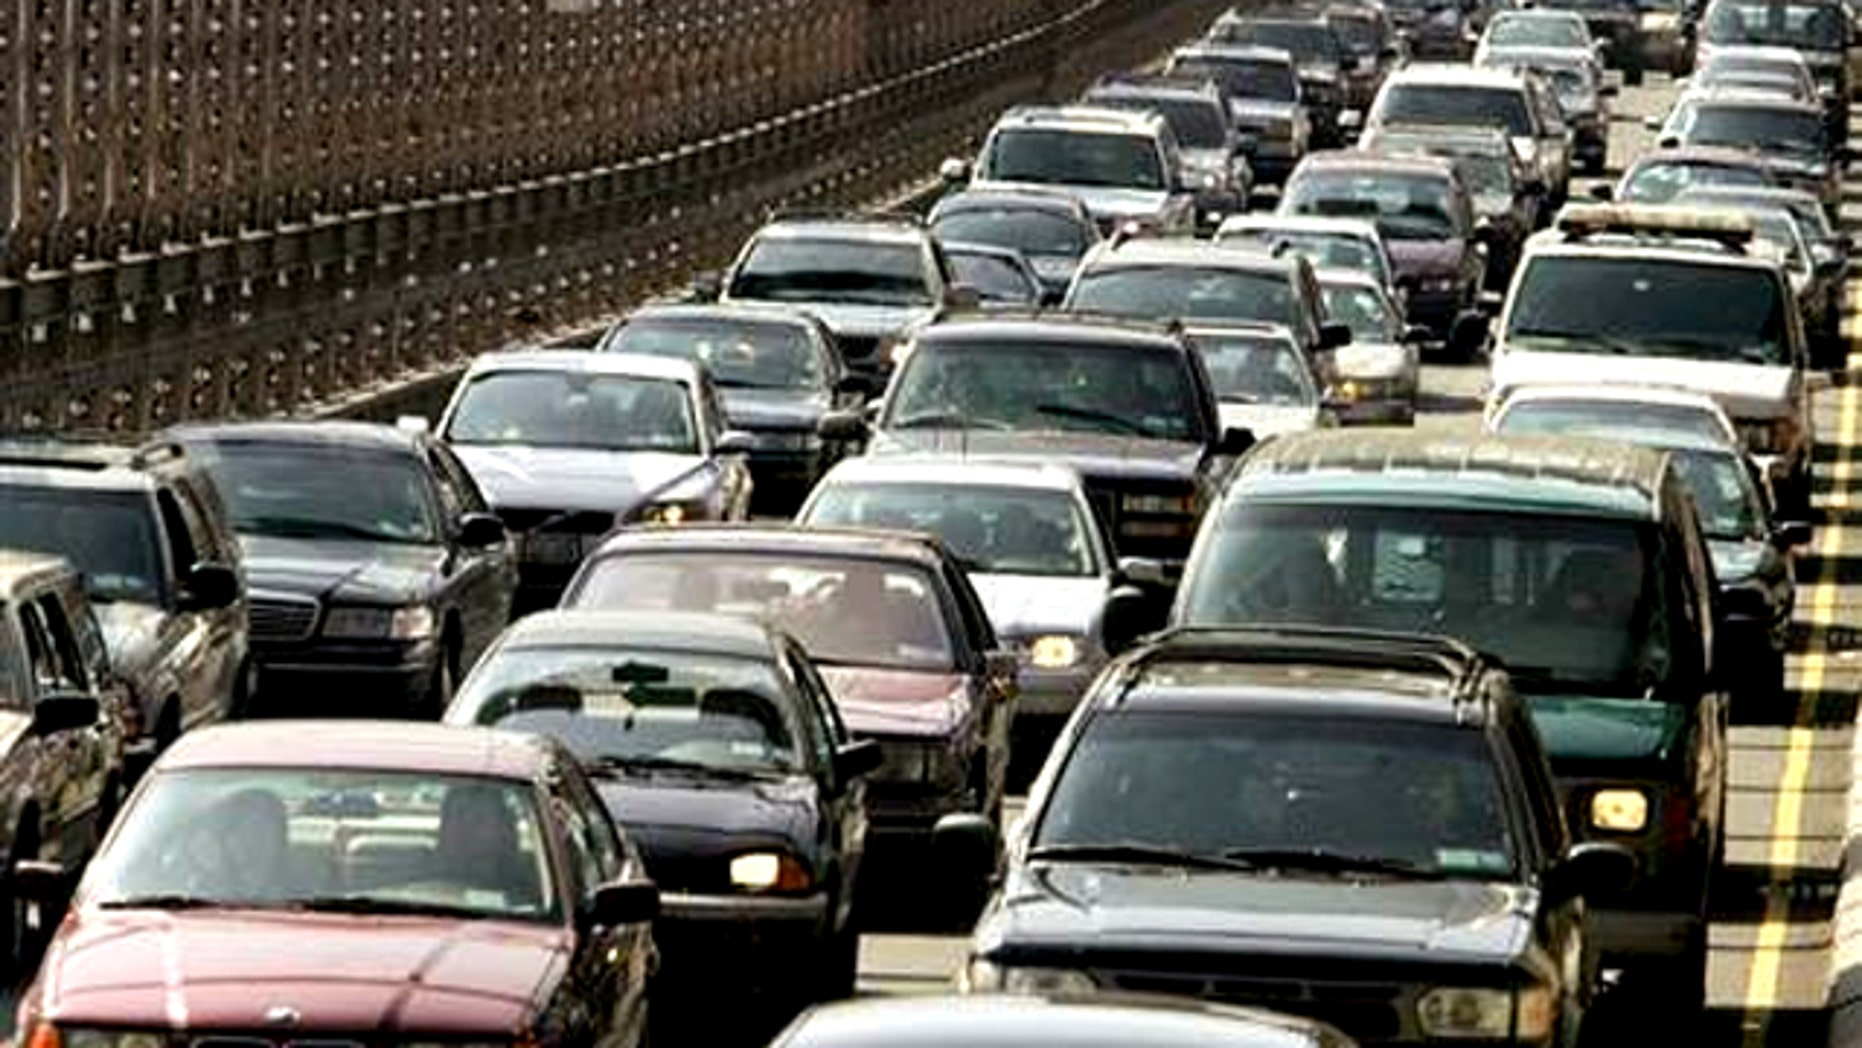 Despite high gas prices nearly 35 million Americans are expected to travel over the Memorial Day holiday weekend.